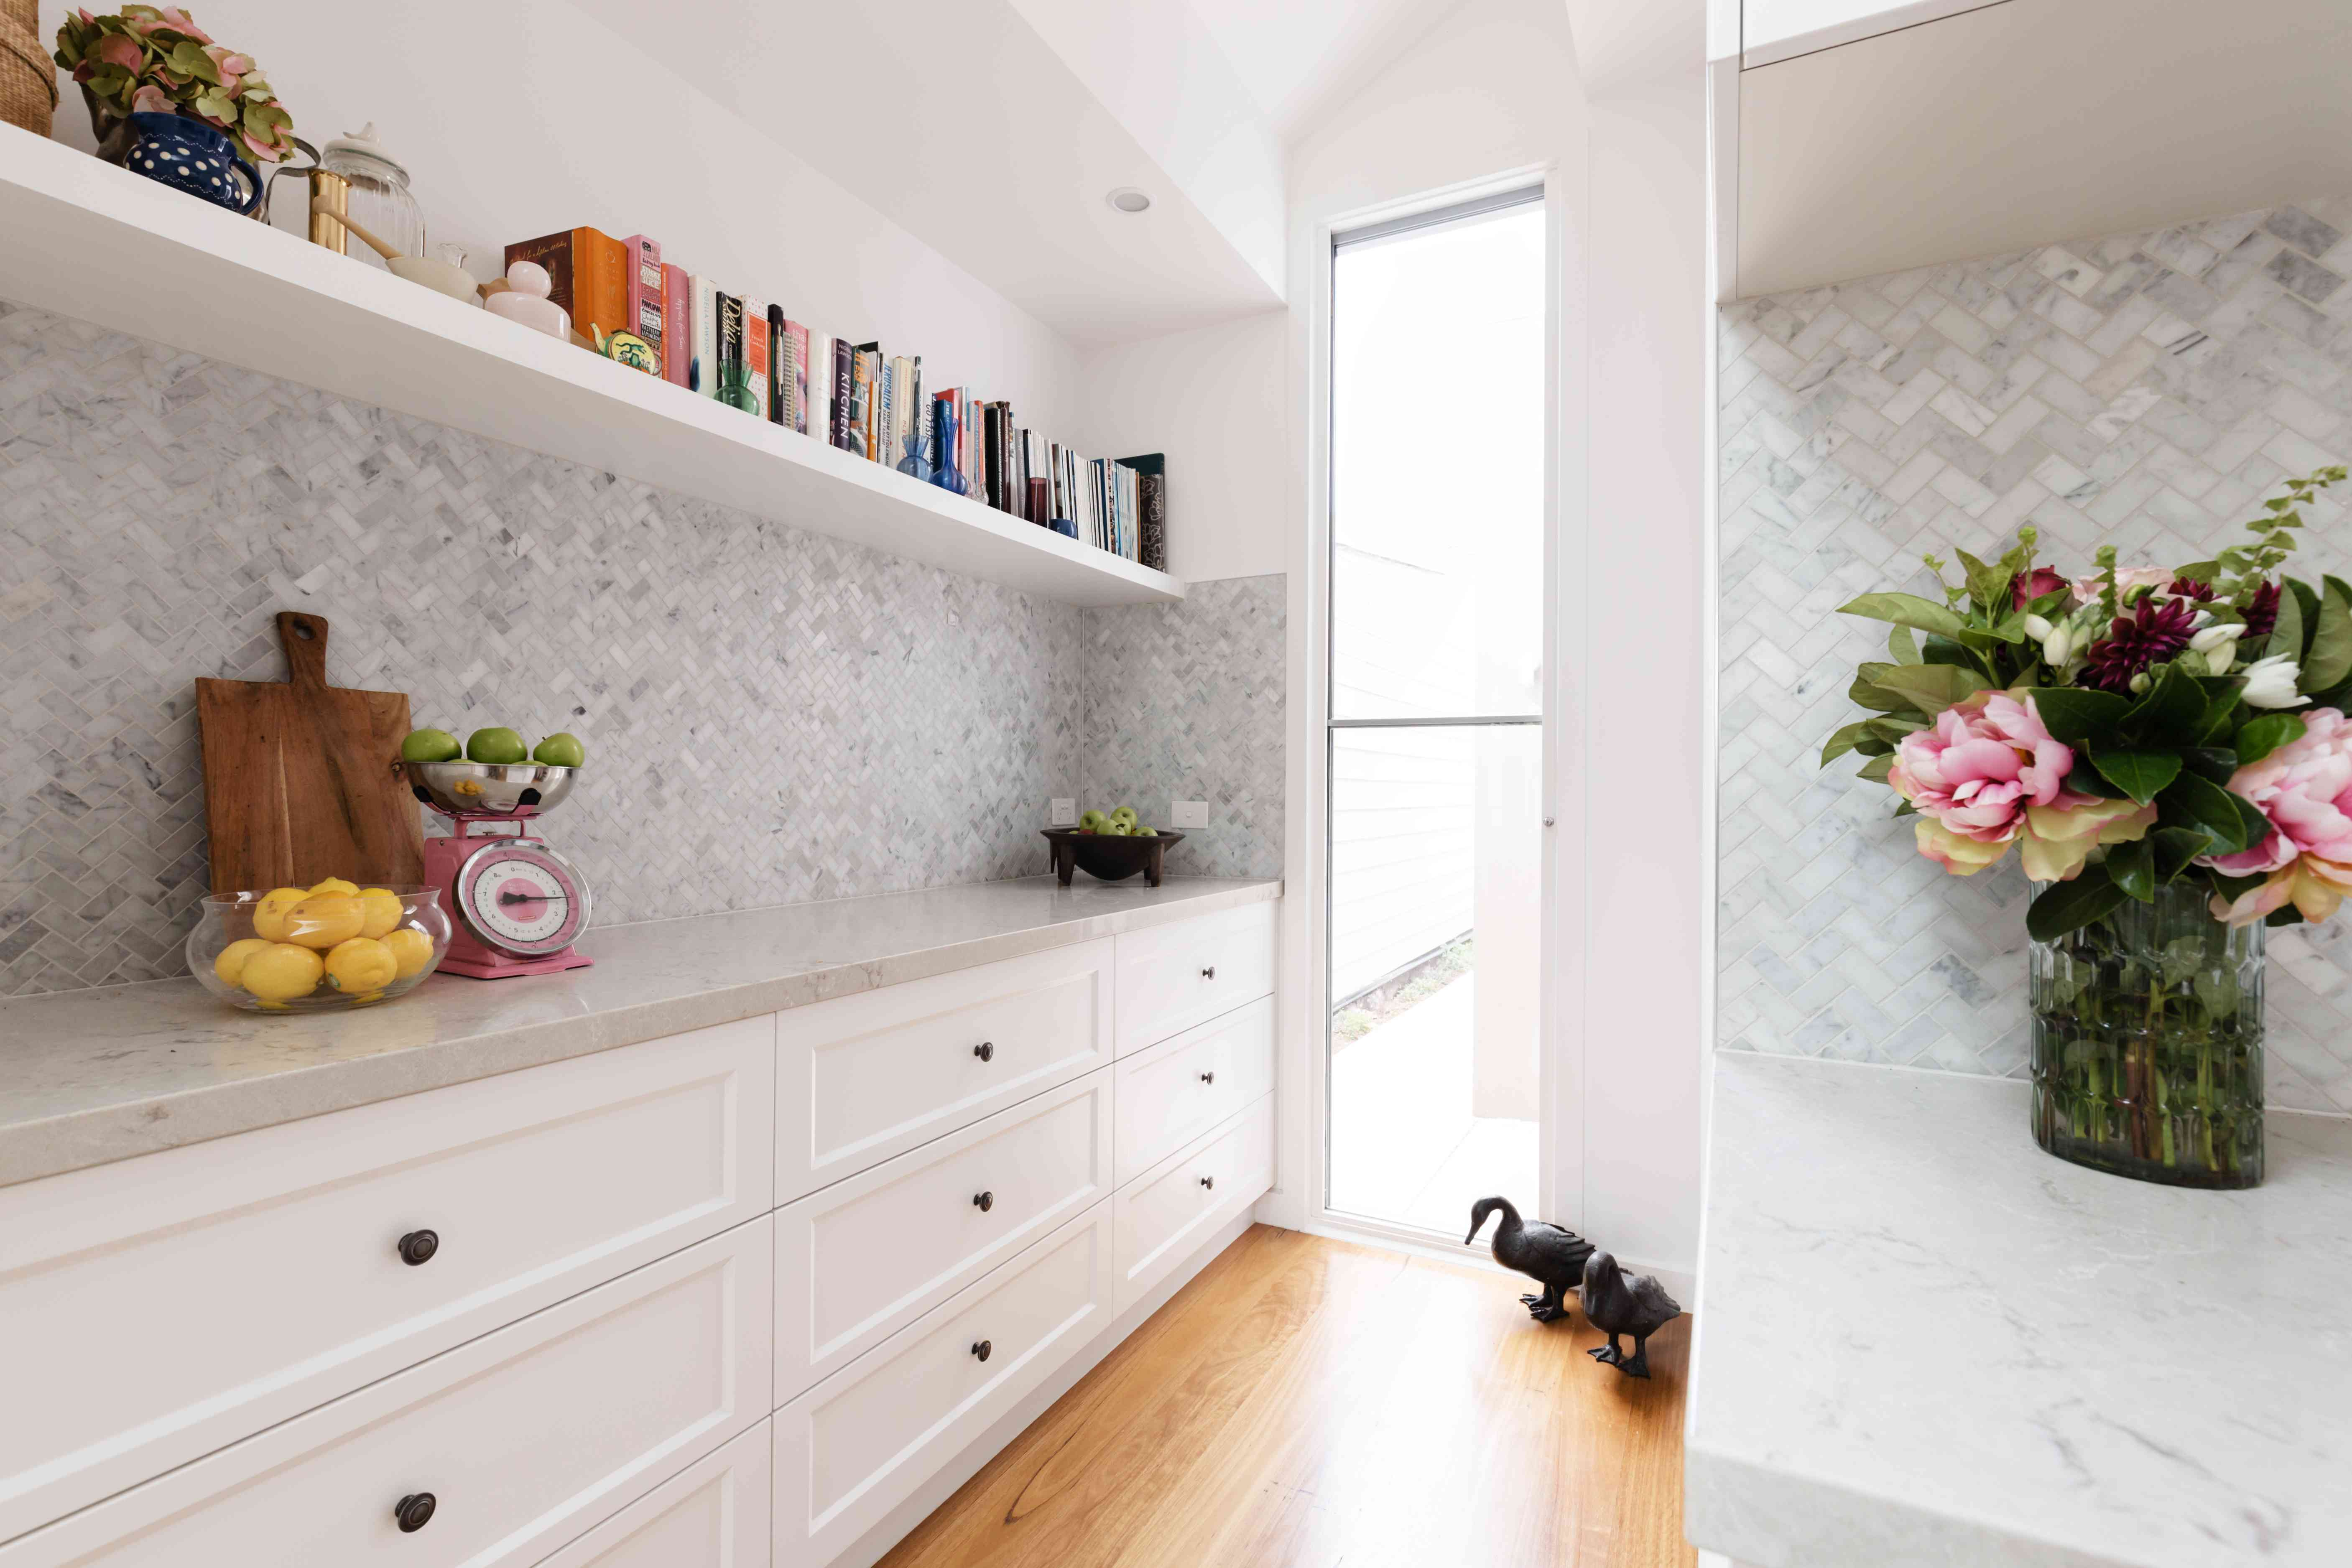 Wrap around butler's pantry in a luxury new kitchen renovation